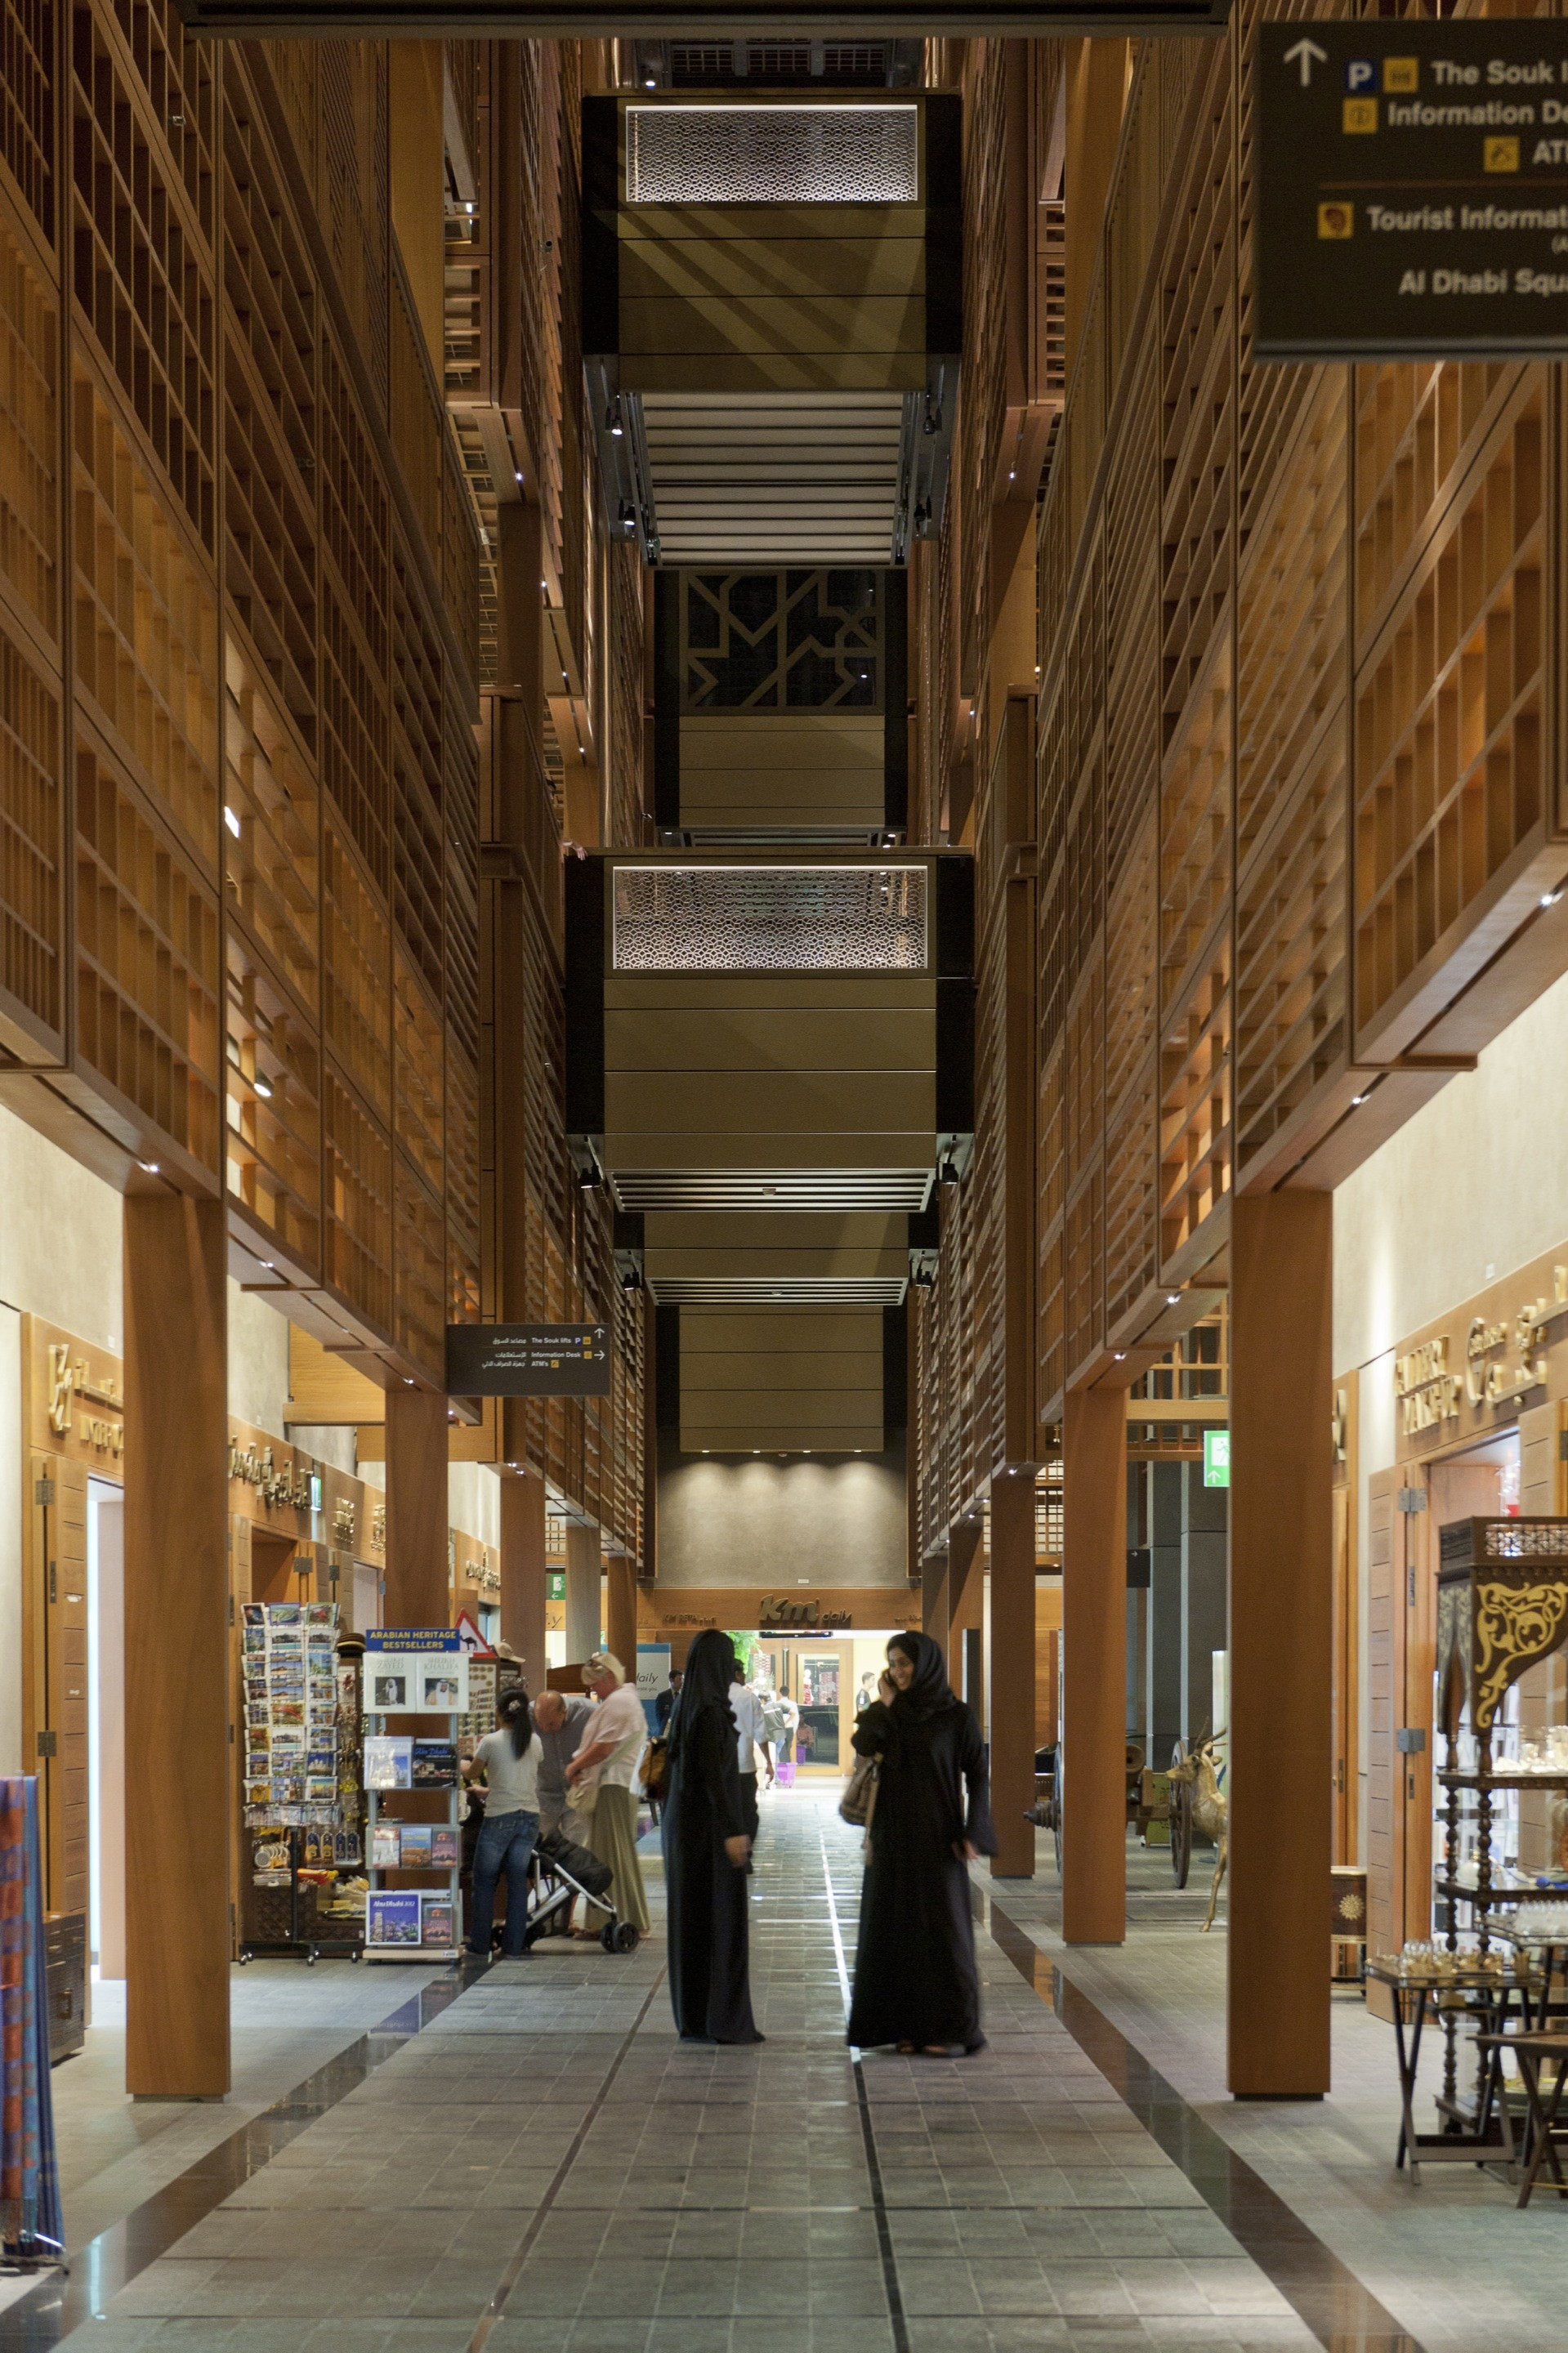 Gallery Of Abu Dhabi Central Market Foster Partners 8